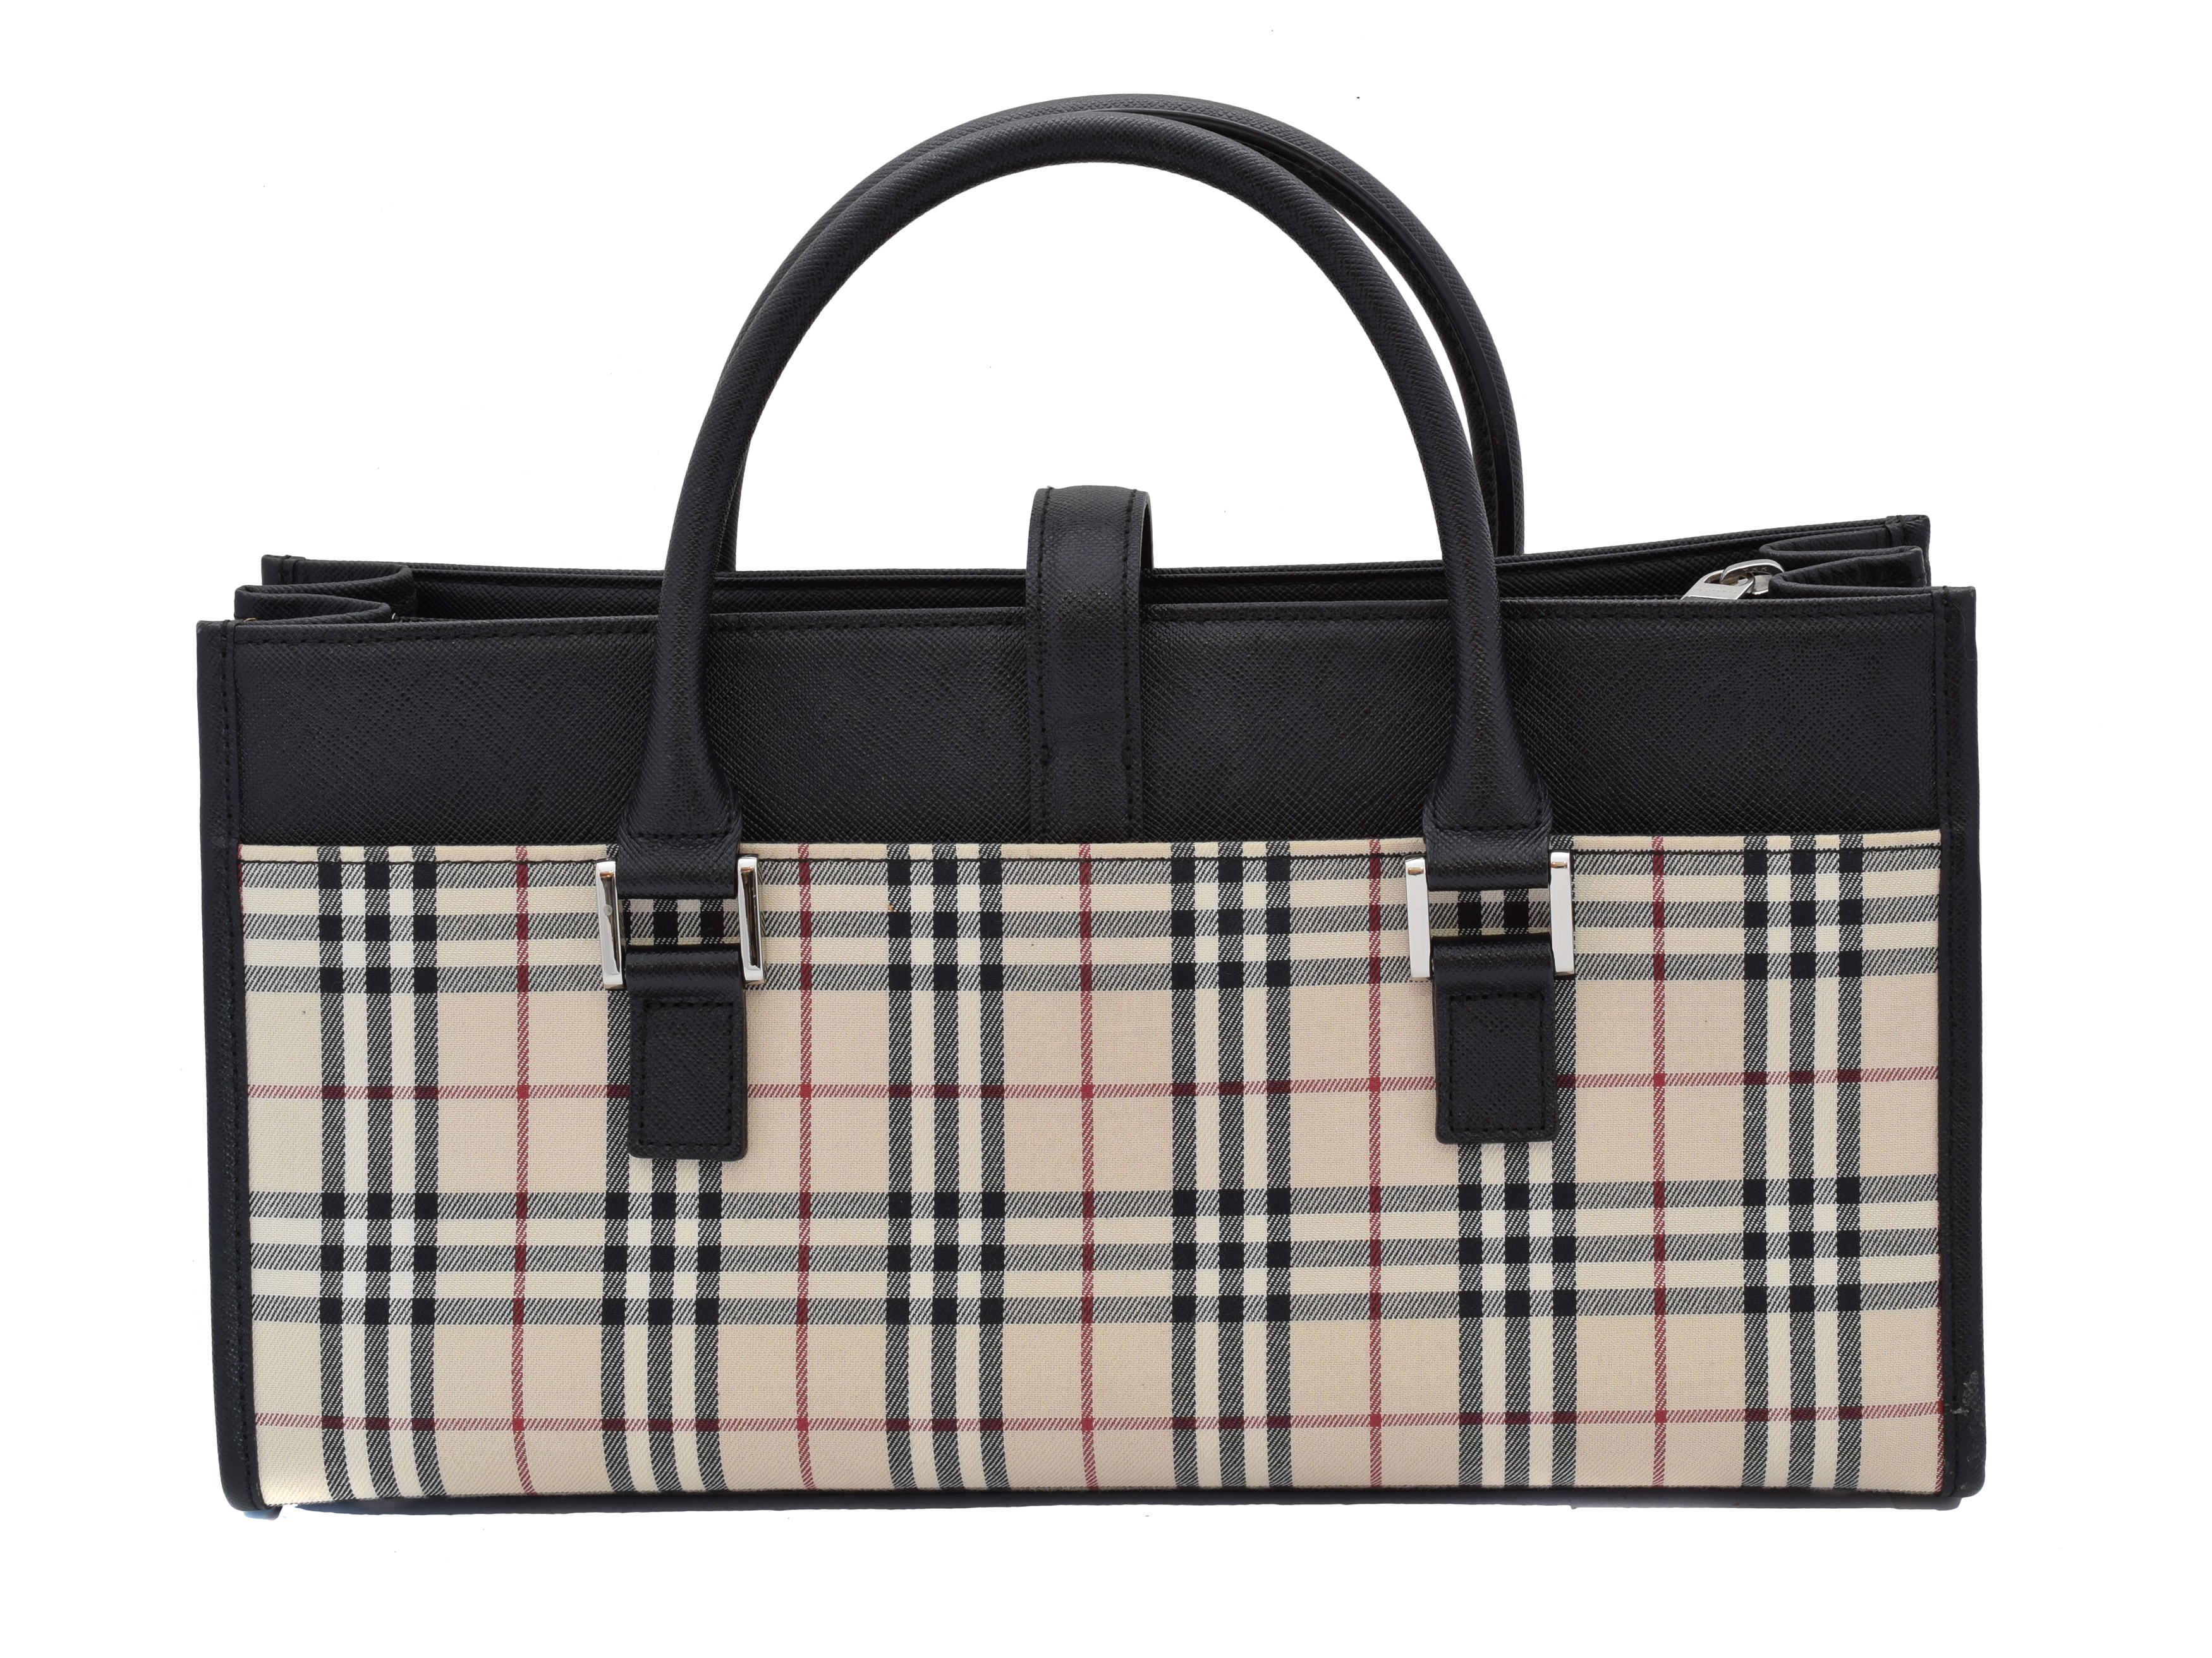 A Burberry Long Tote Shoulder Bag, - Image 2 of 2